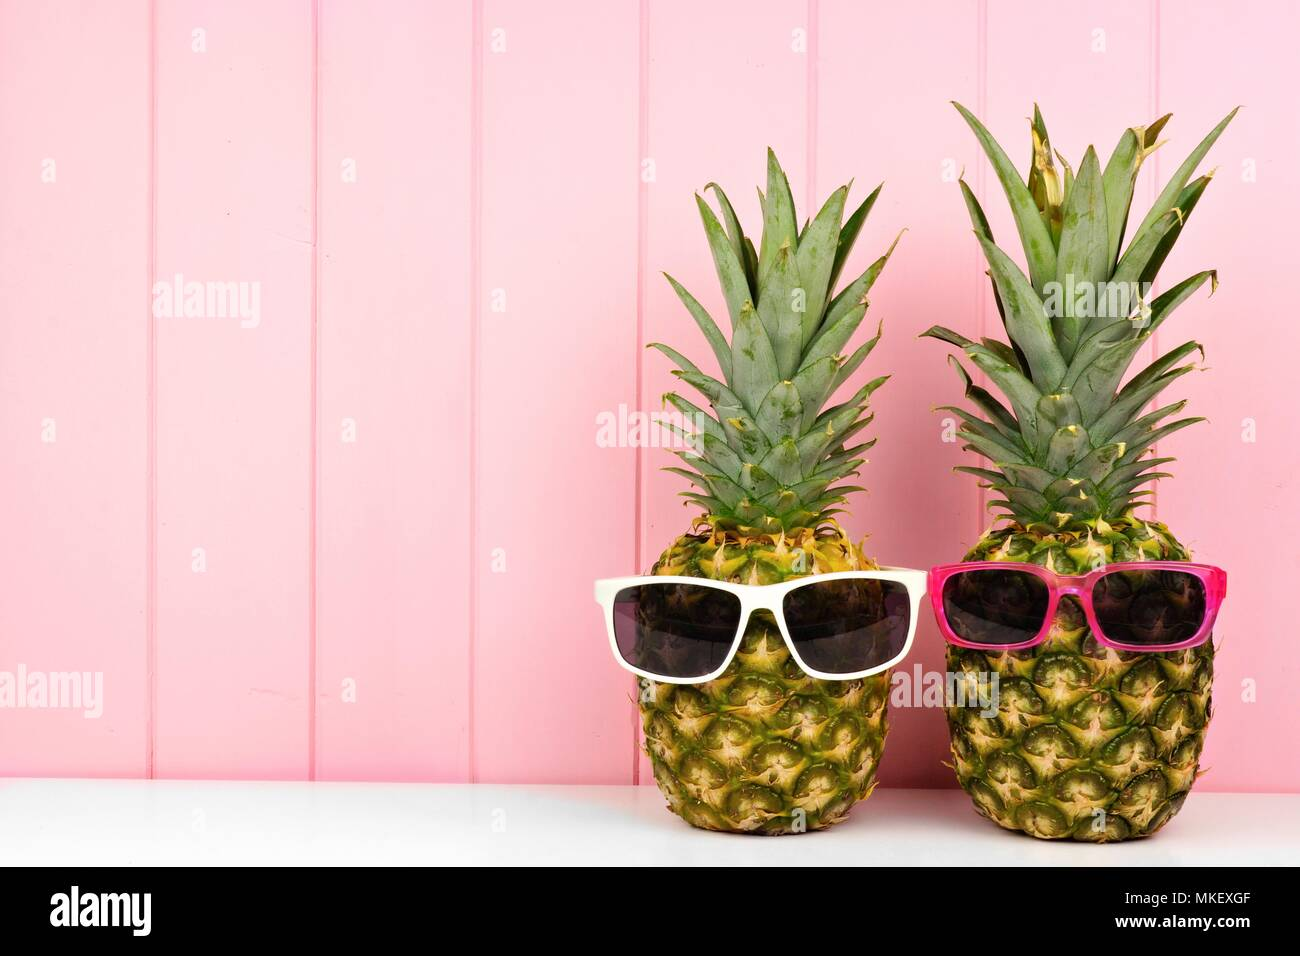 Pineapple With Sunglasses Tumblr Trendy Pineapple Fruit Hipster Sunglasses Stock Photos